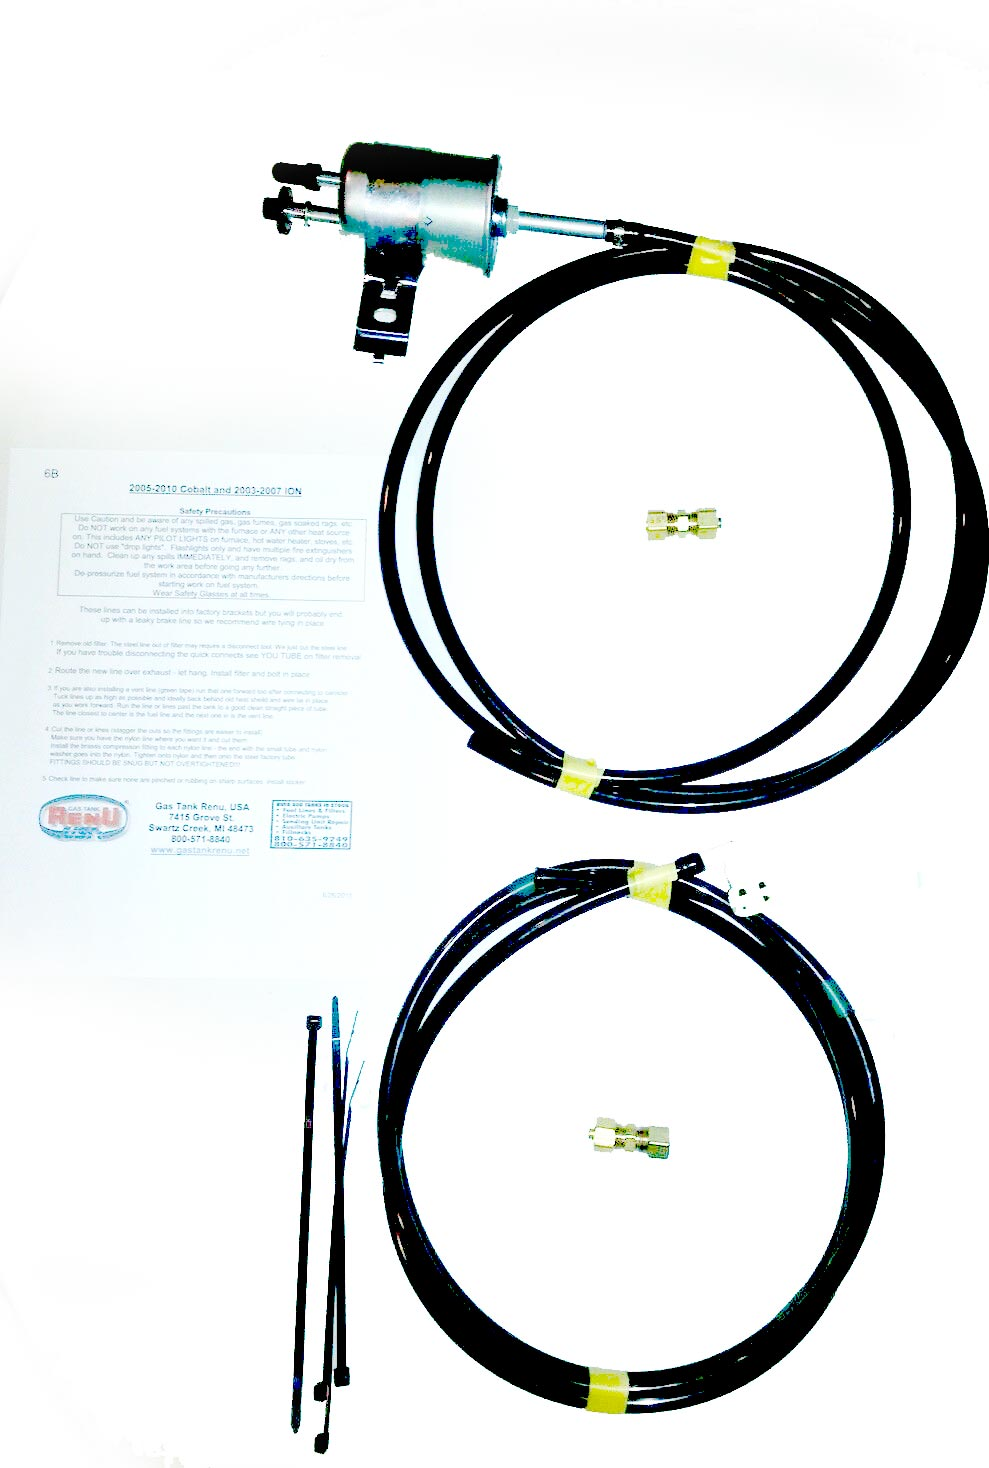 [SCHEMATICS_48EU]  2007 Saturn ION Fuel Lines | 2007 Saturn Ion Fuel Filter |  | Gas Tank Renu